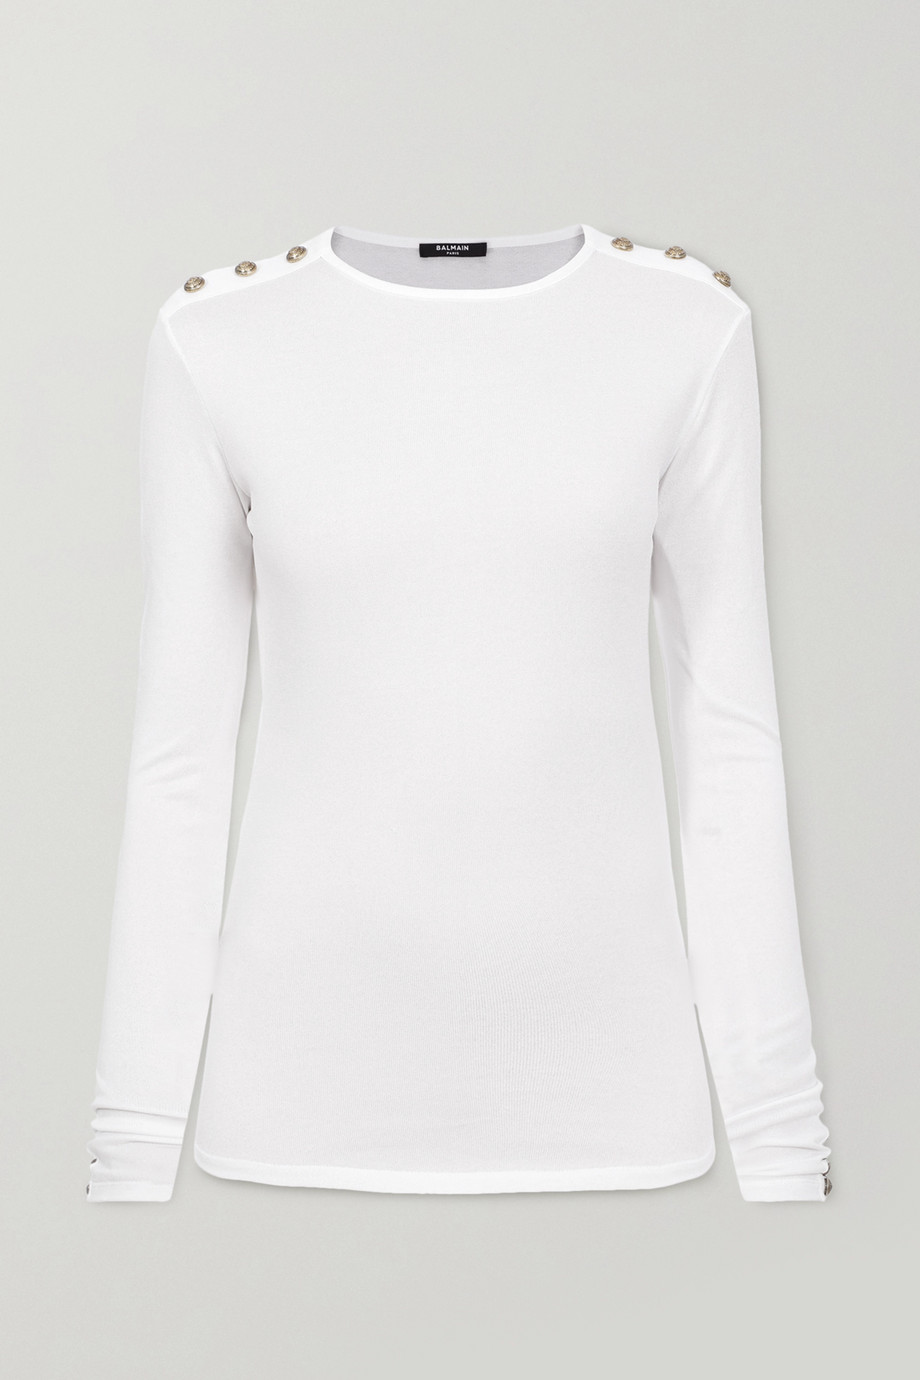 Balmain Button-embellished stretch-jersey top